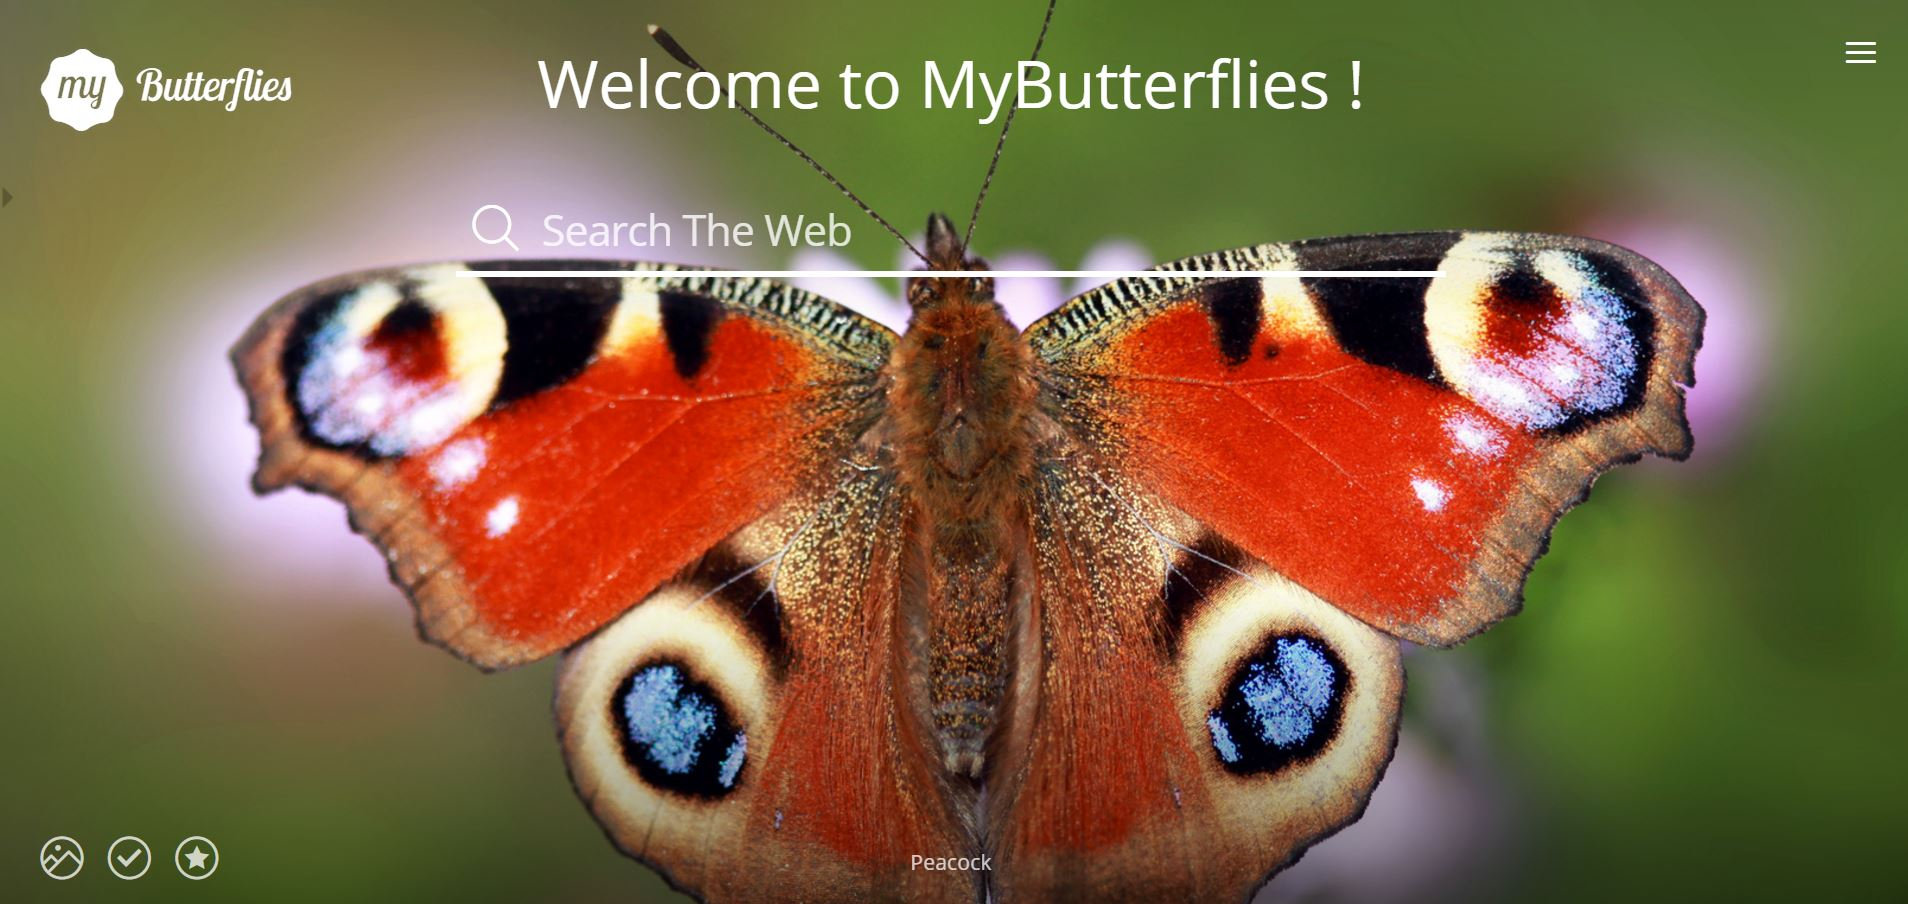 My Butterflies images